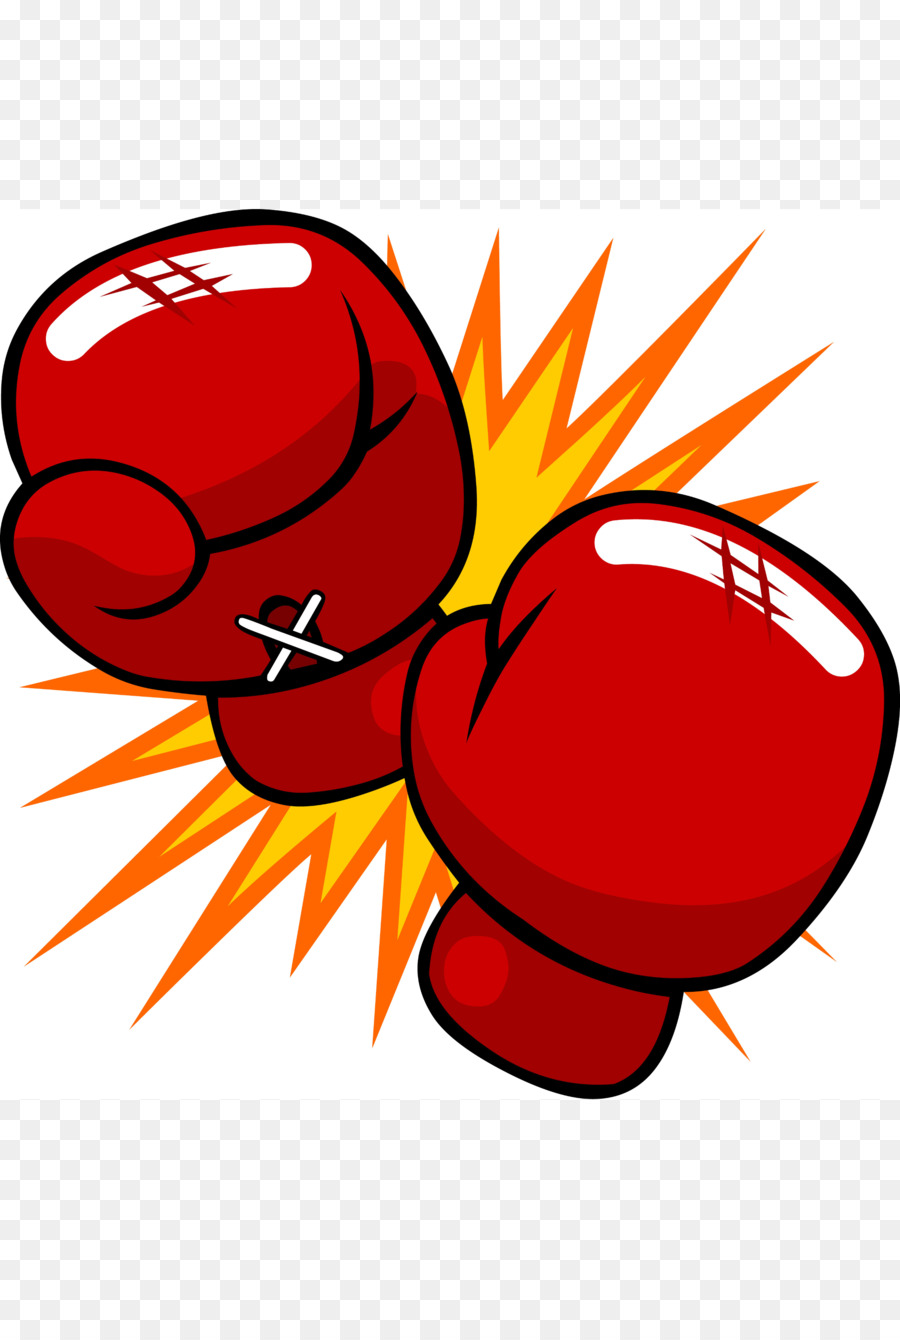 Boxing glove Drawing Cartoon - Boxing